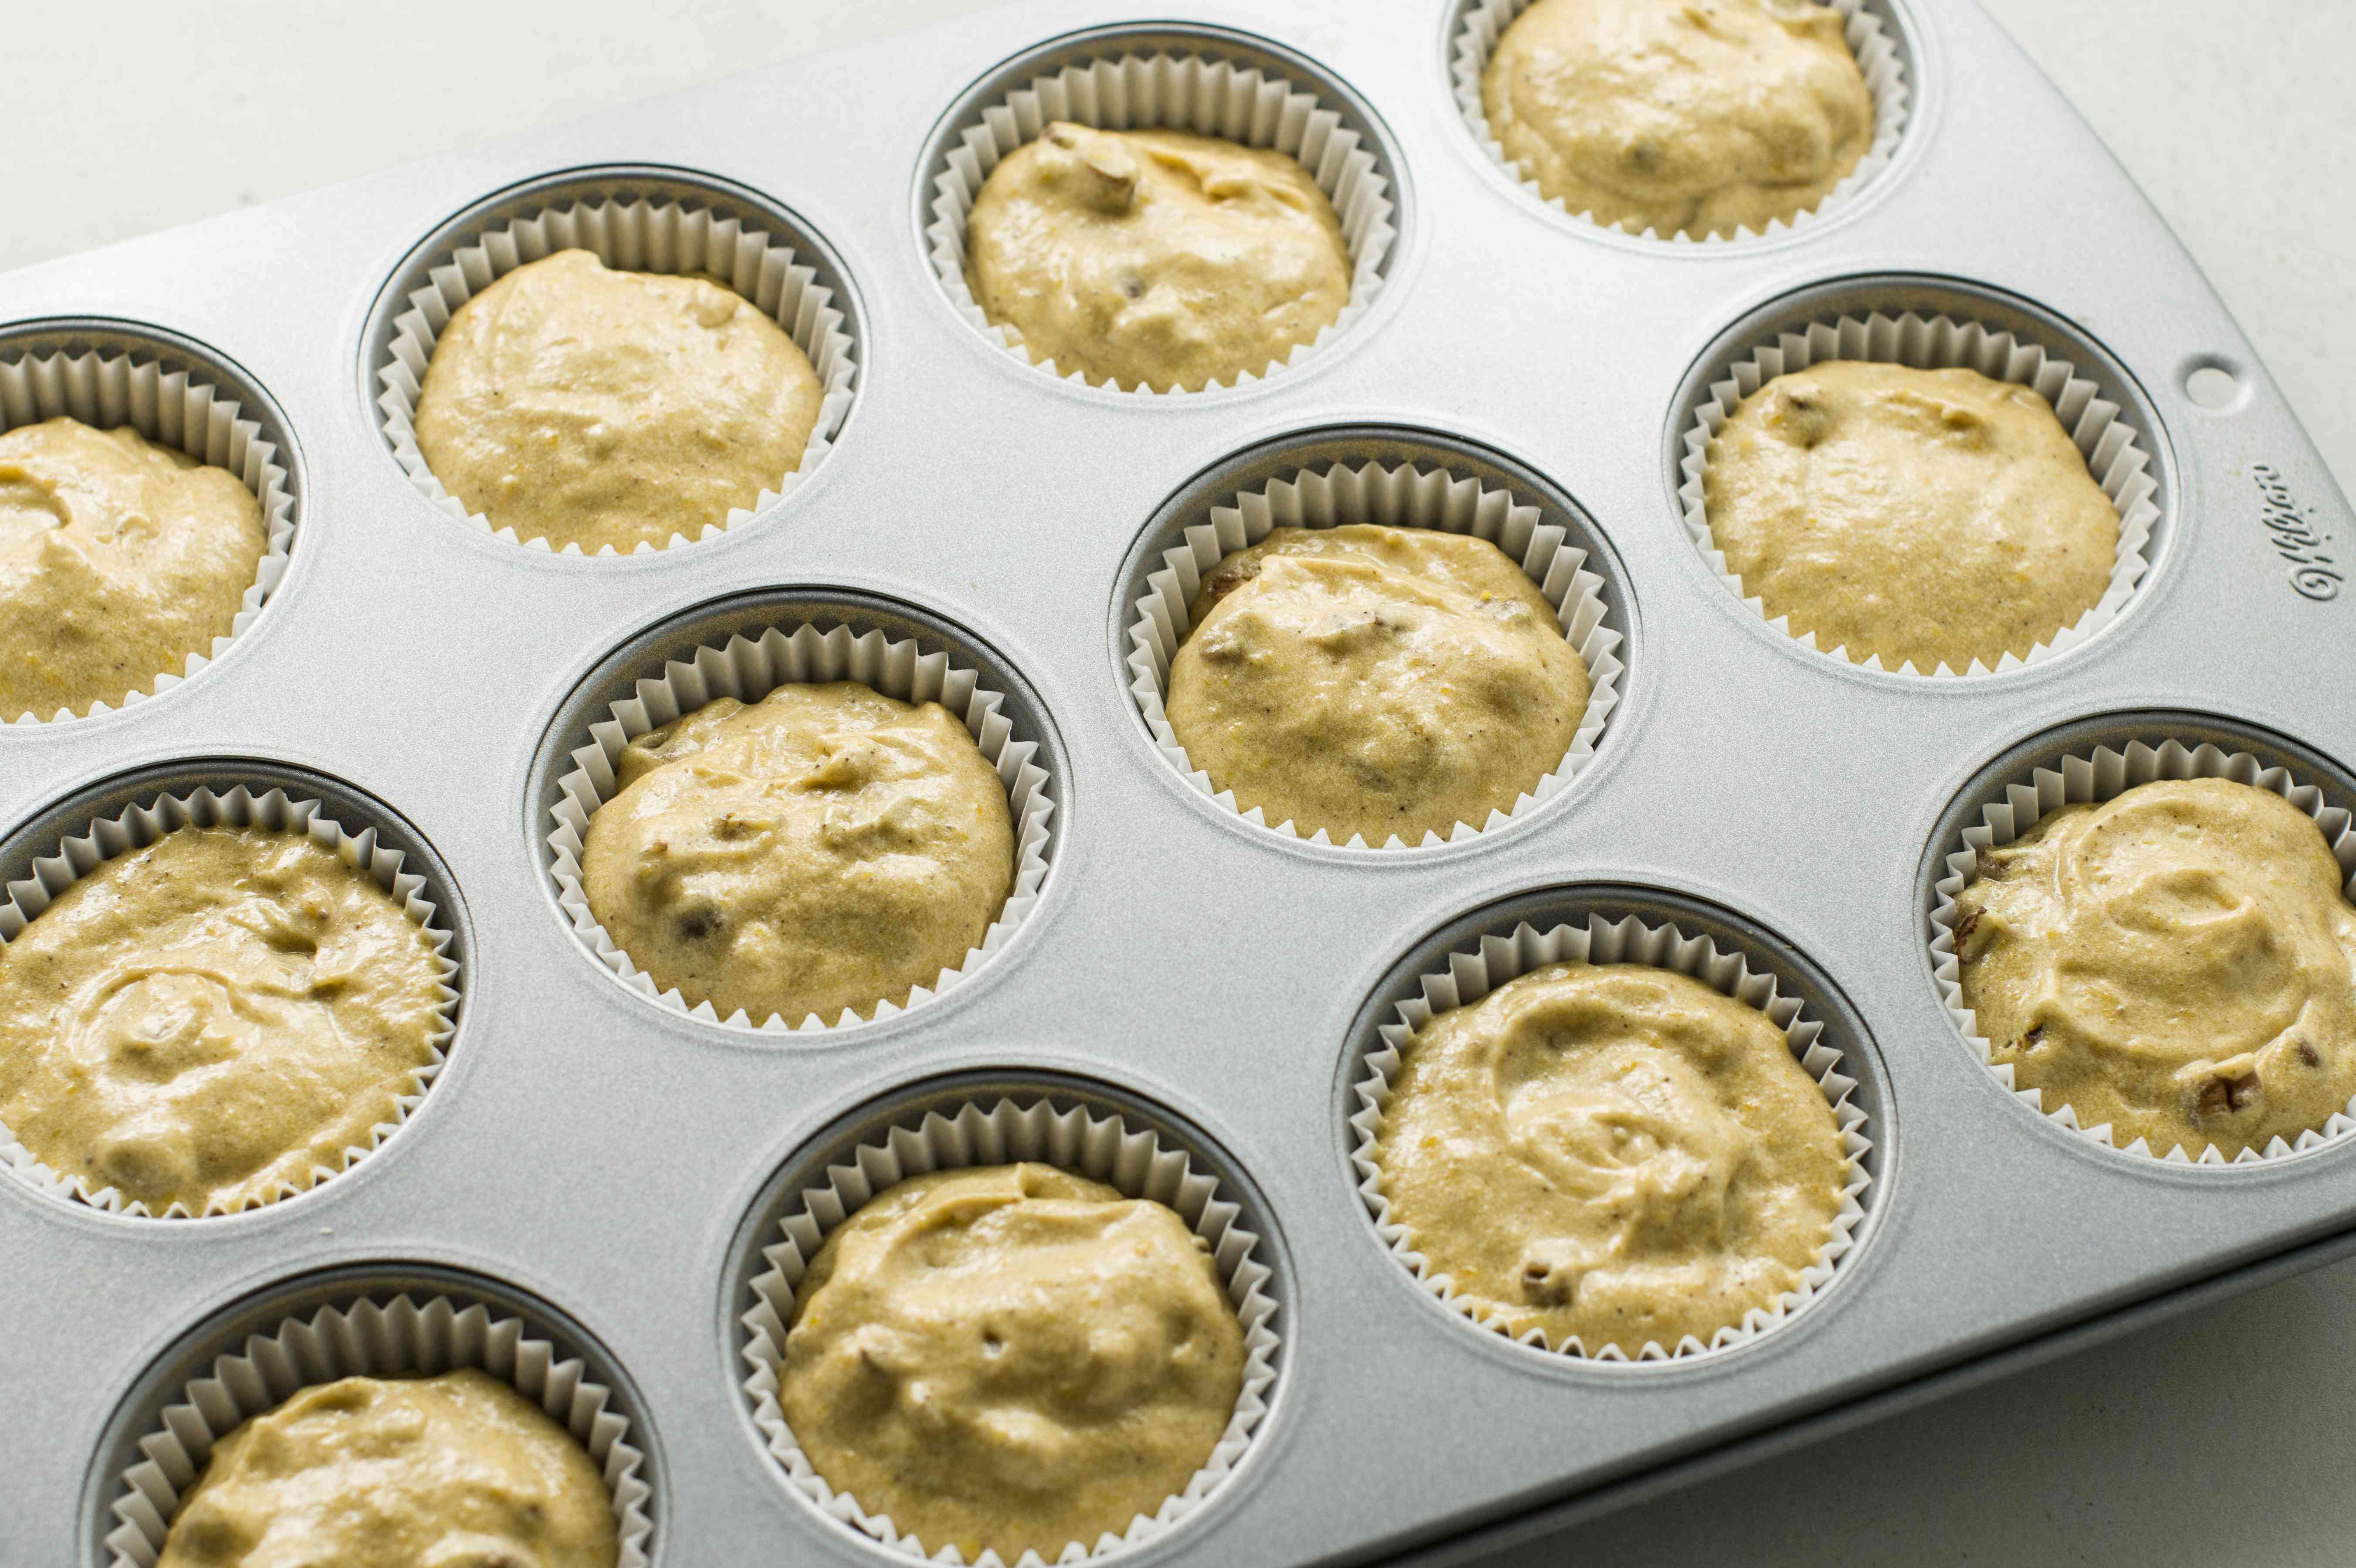 Fill lined muffin cups